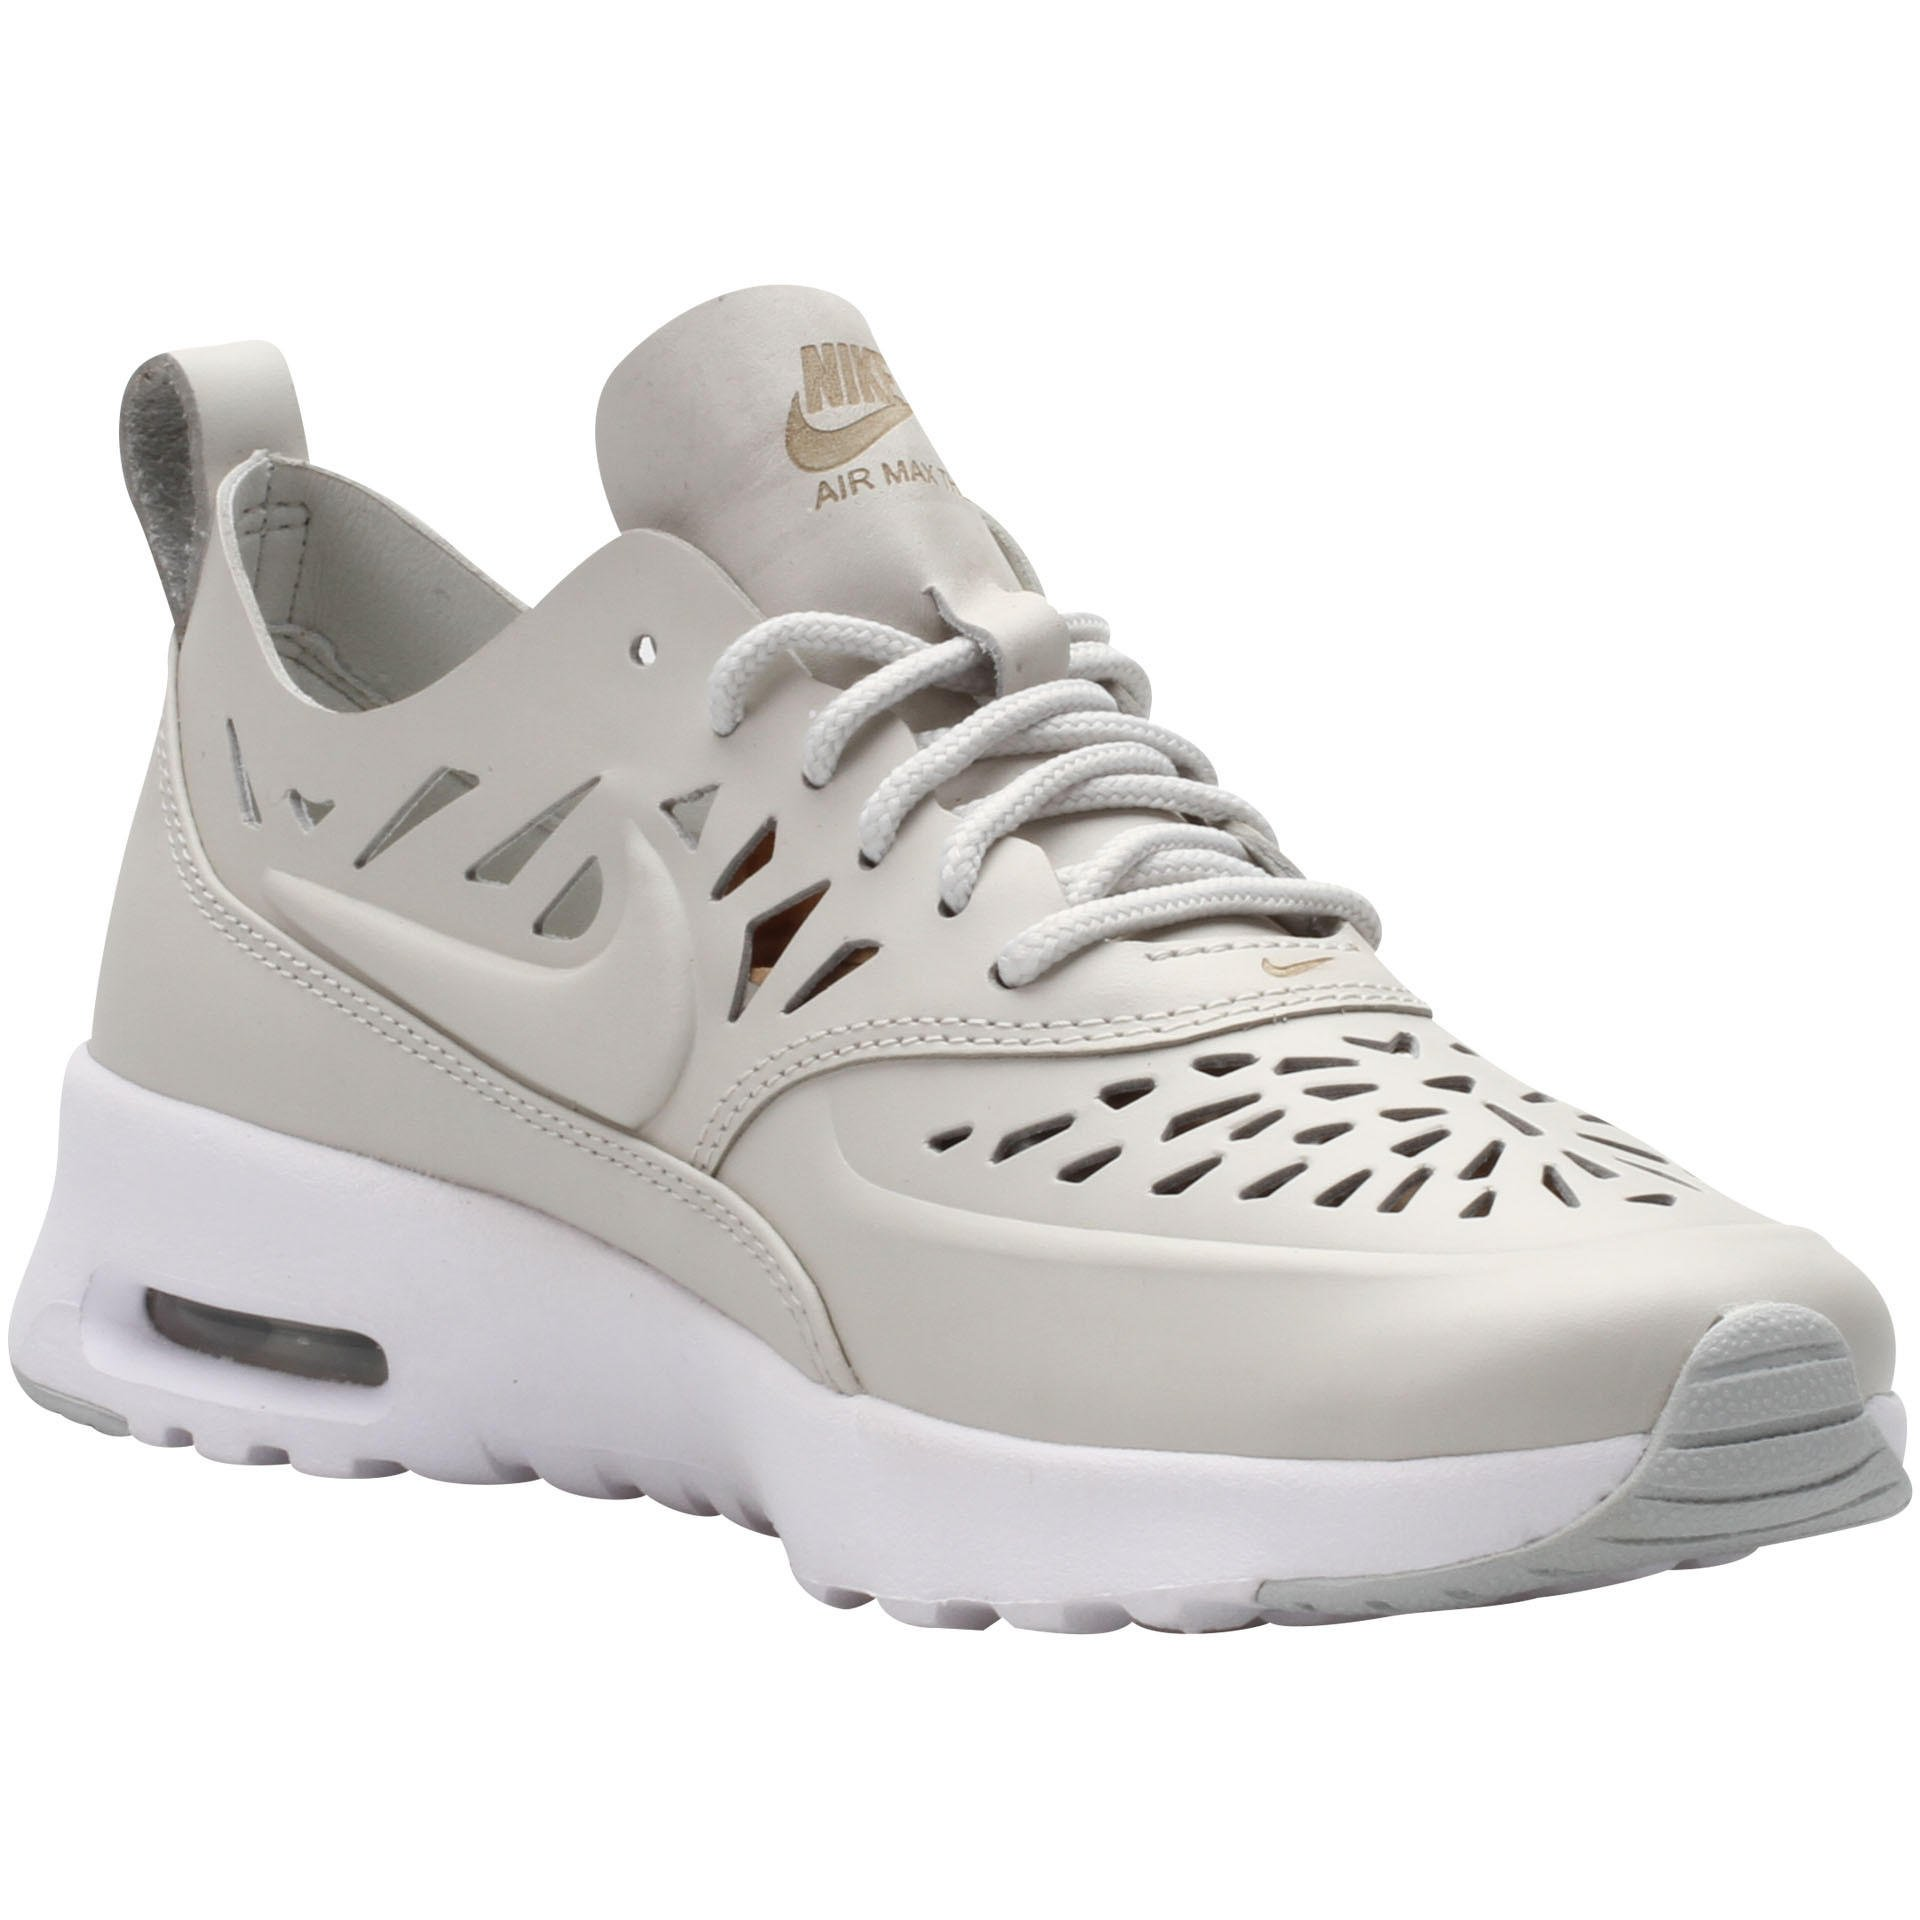 nike wmns air max thea joli qs light from nice kicks shoes. Black Bedroom Furniture Sets. Home Design Ideas